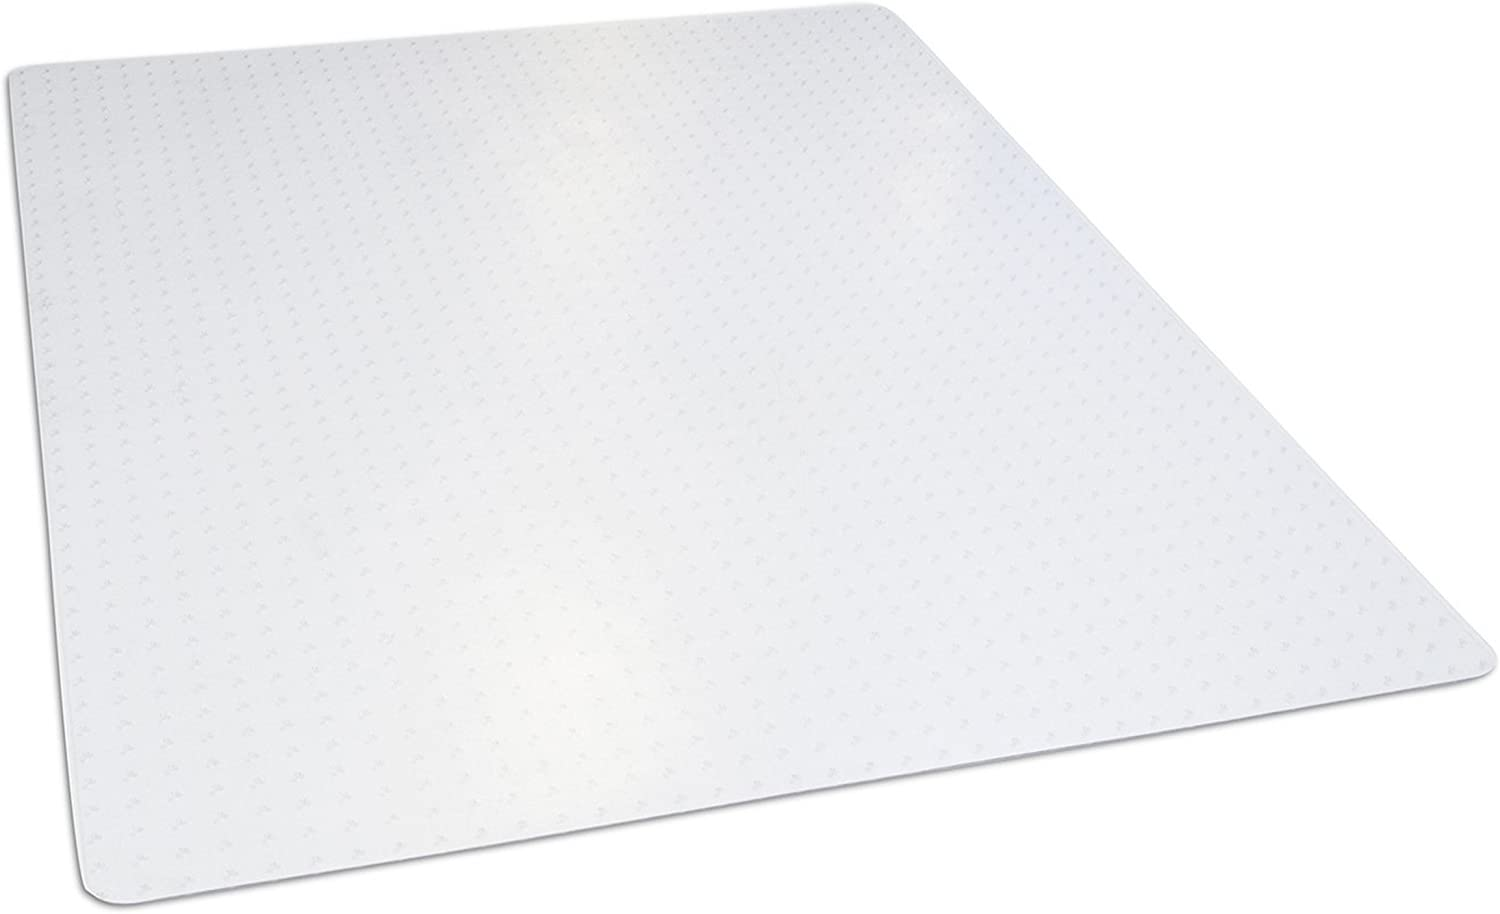 """Dimex 46""""x 60"""" Clear Rectangle Office Chair Mat For Low Pile Carpet, Made In The USA, BPA And Phthalate Free, C532003G : Office Products"""